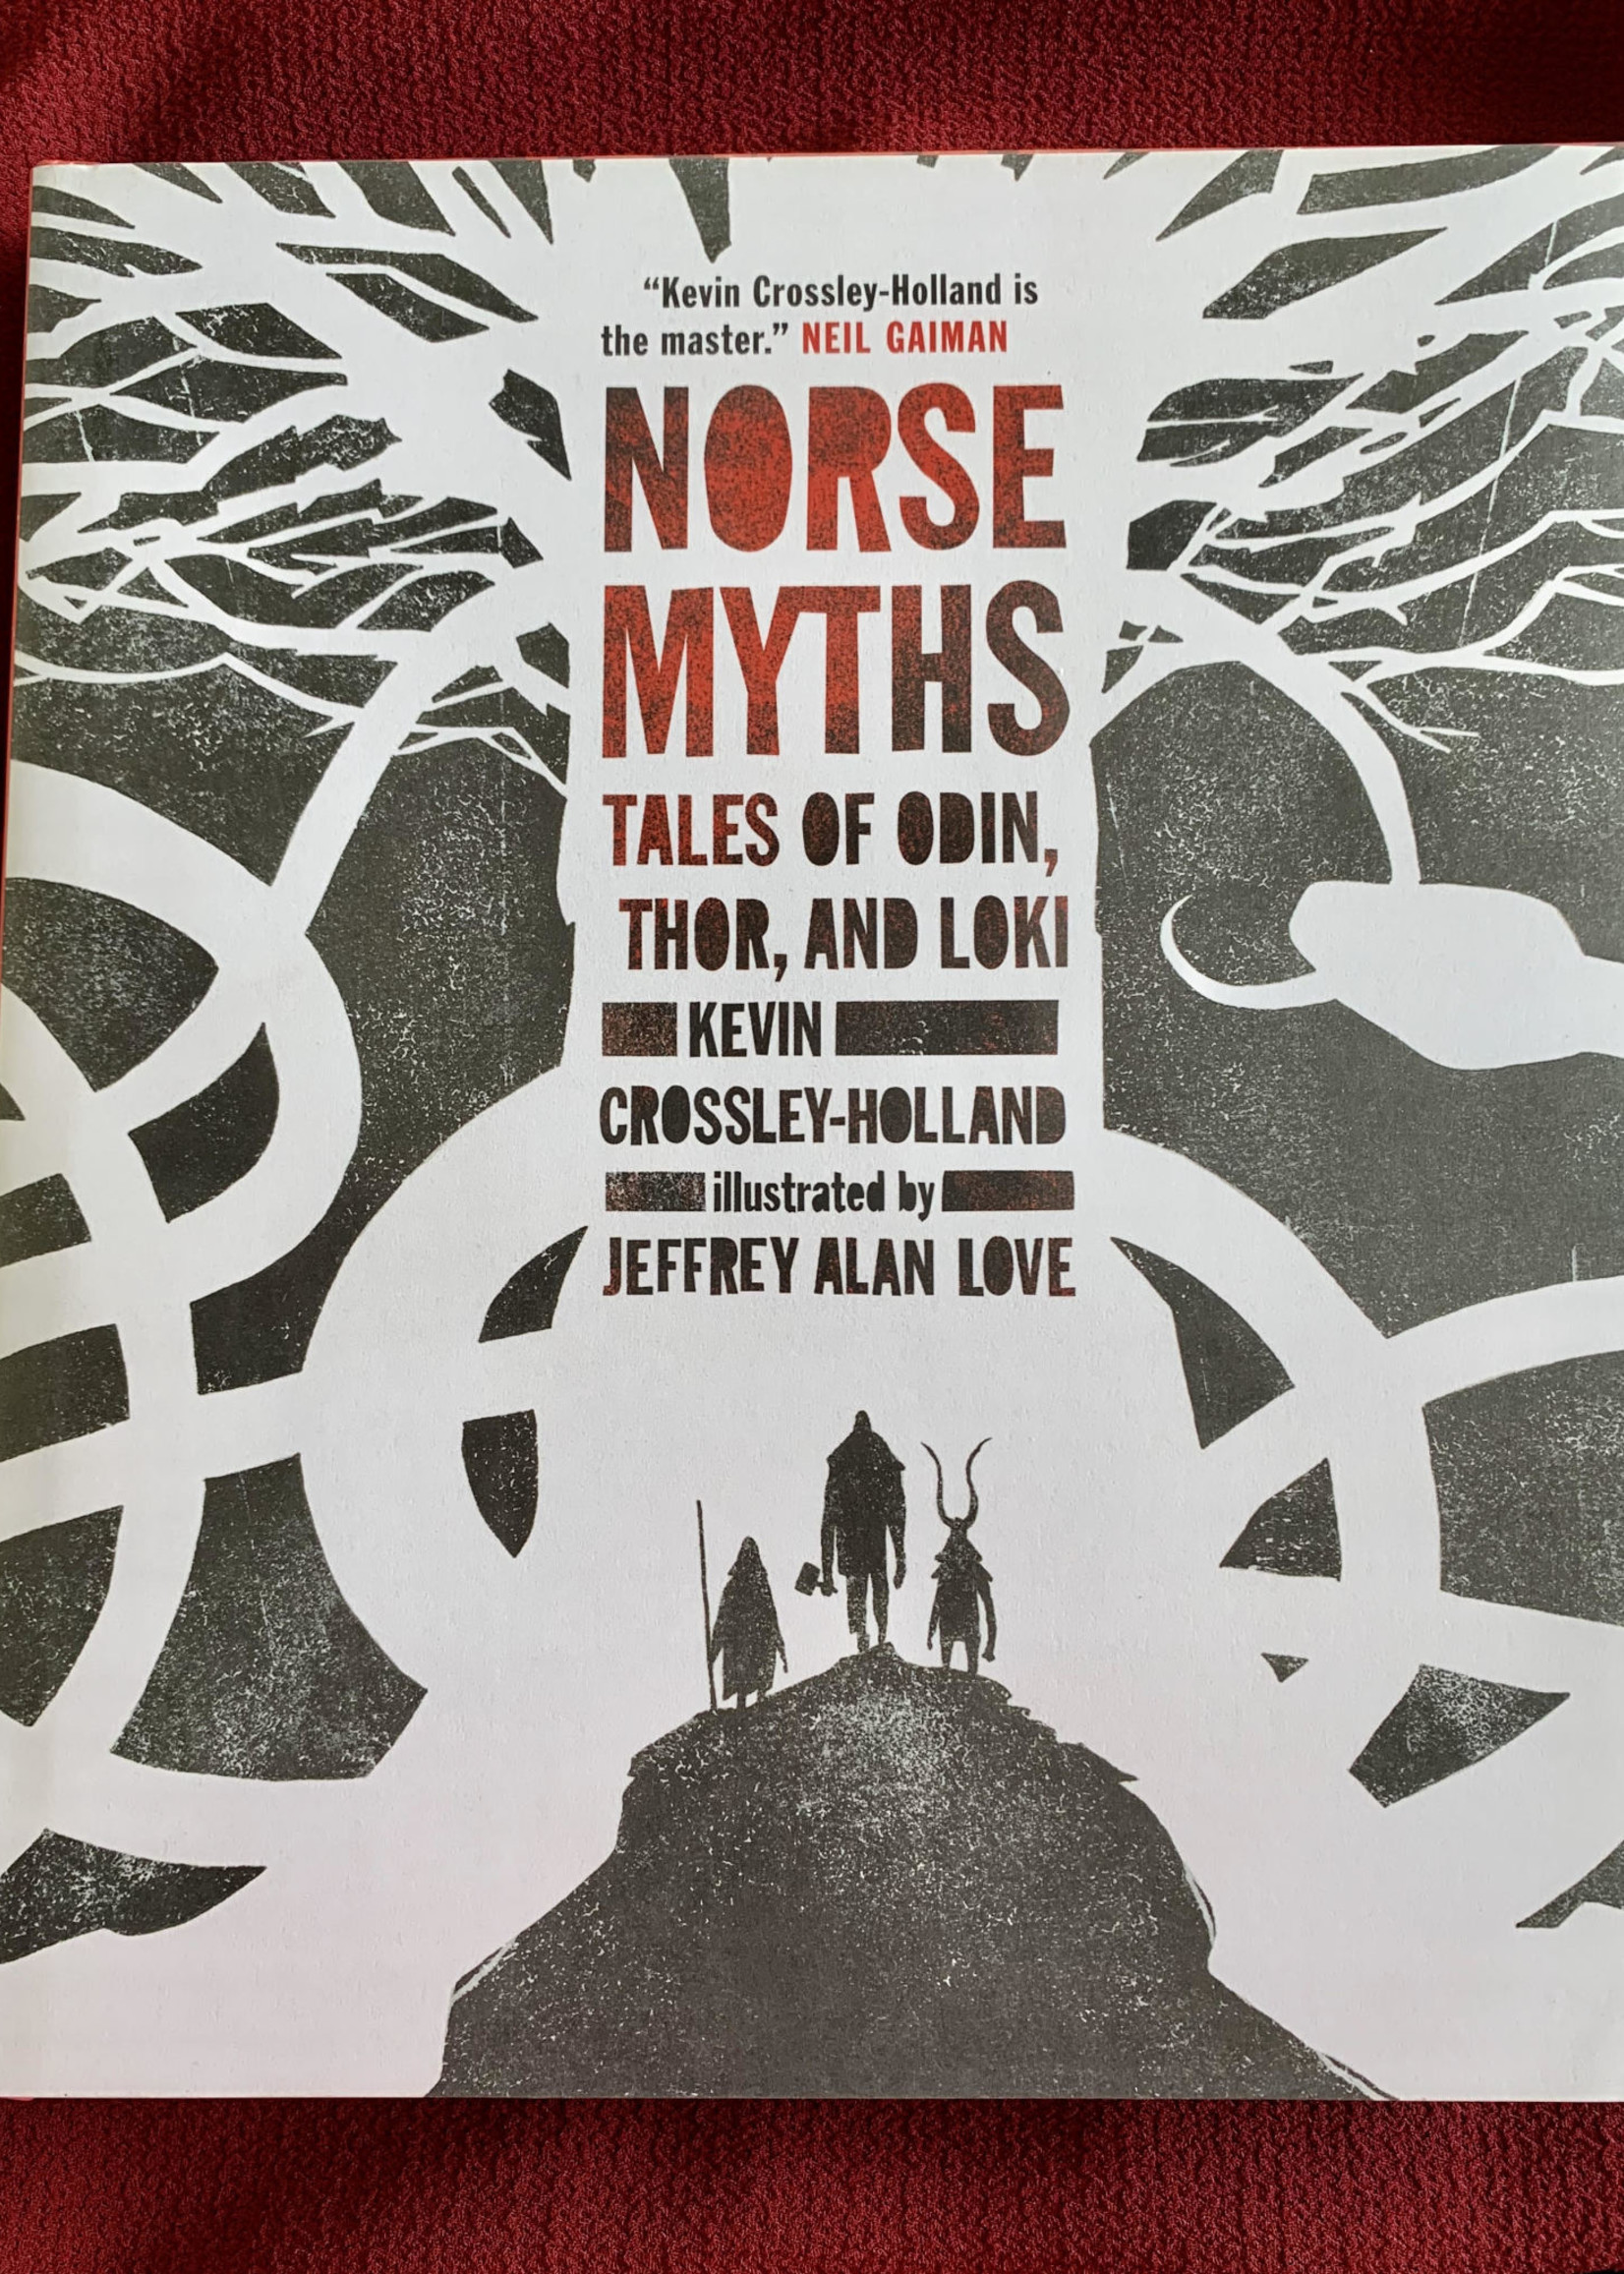 Norse Myths TALES OF ODIN, THOR AND LOKI By KEVIN CROSSLEY-HOLLAND Illustrated by JEFFREY ALAN LOVE